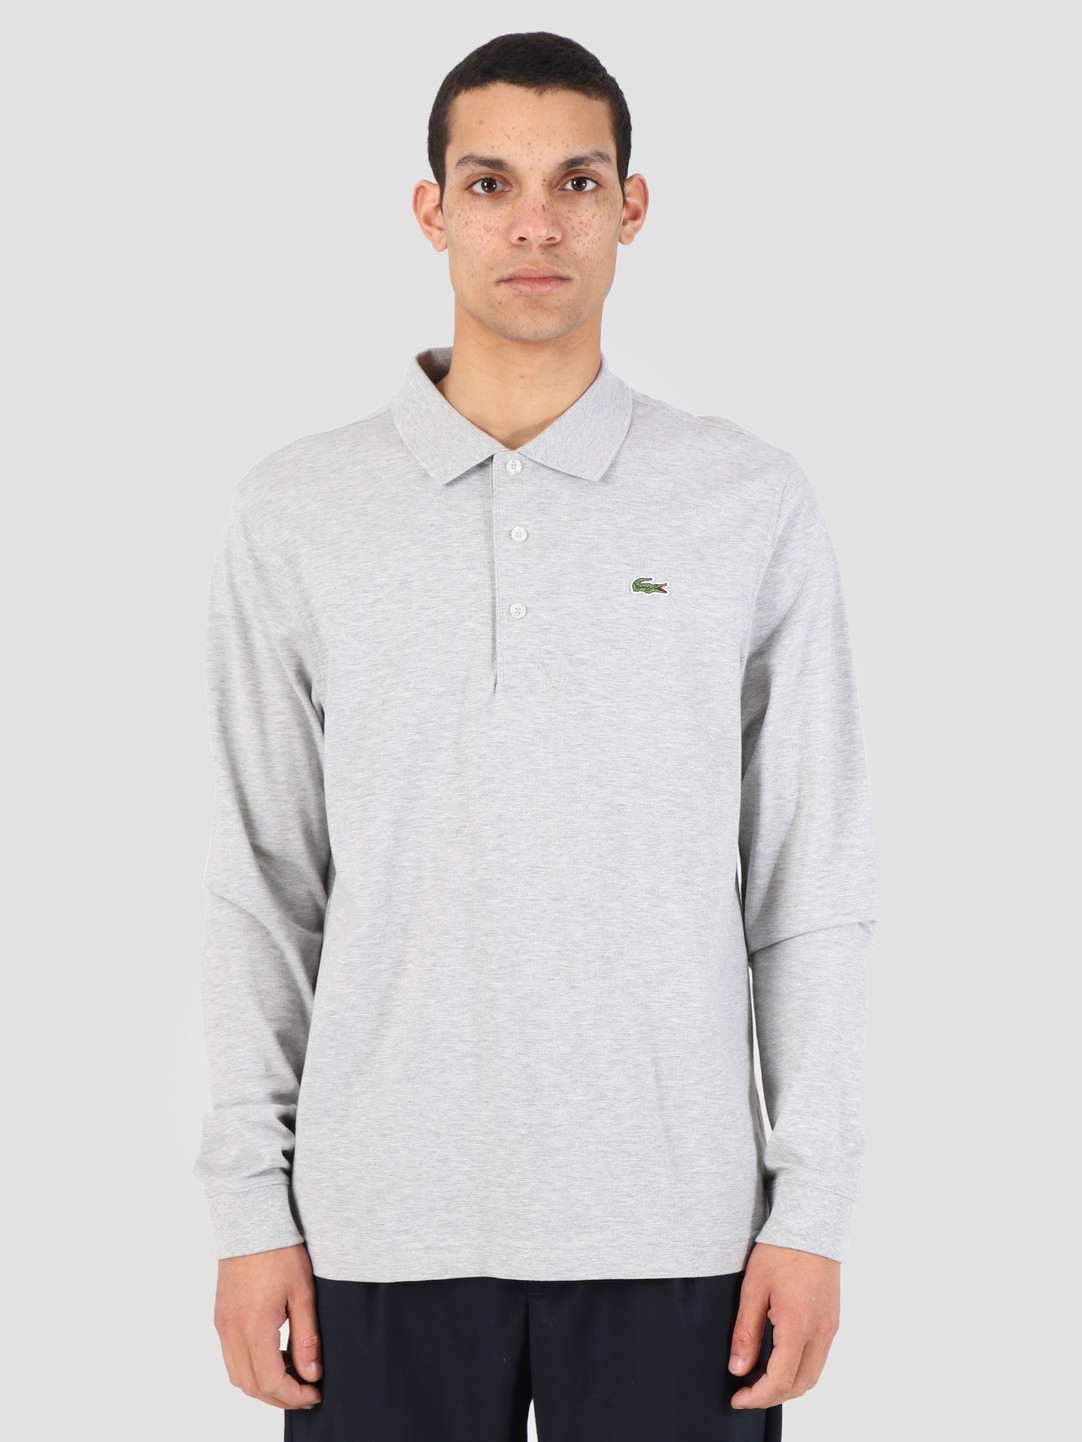 160725dc Lacoste 1HP4 Longsleeve Polo 07A Argent Chine L1330-83 | FRESHCOTTON